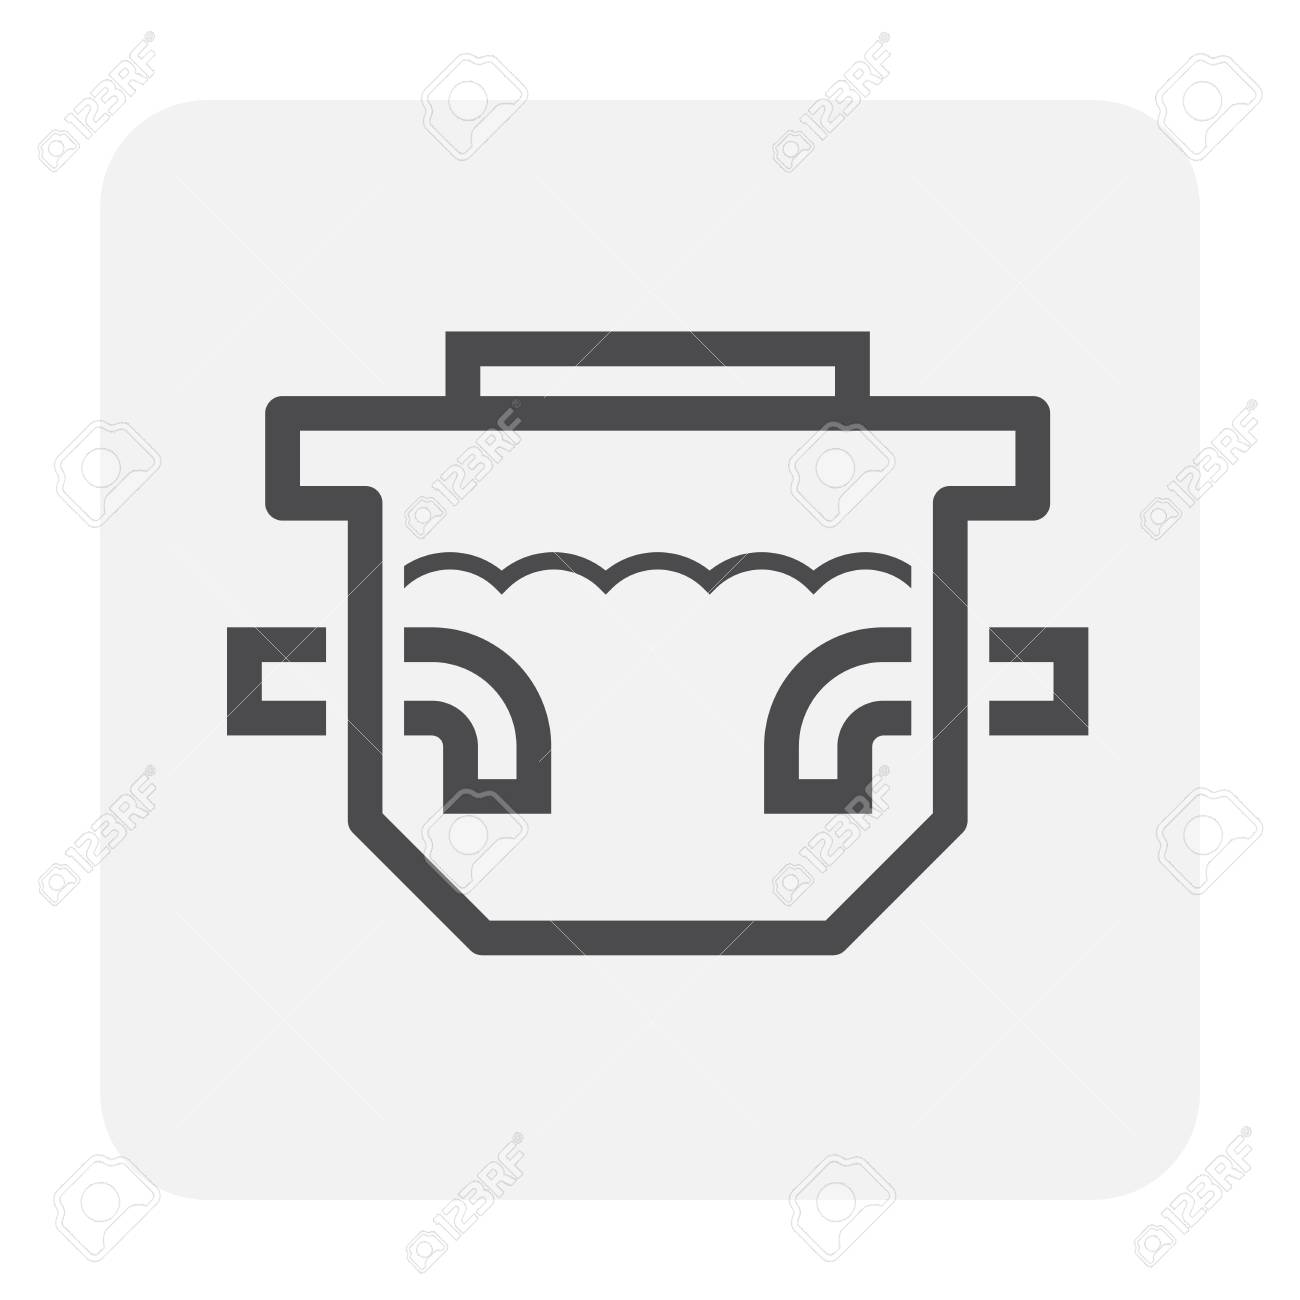 septic tank icon design black and outline royalty free cliparts vectors and stock illustration image 111184662 septic tank icon design black and outline